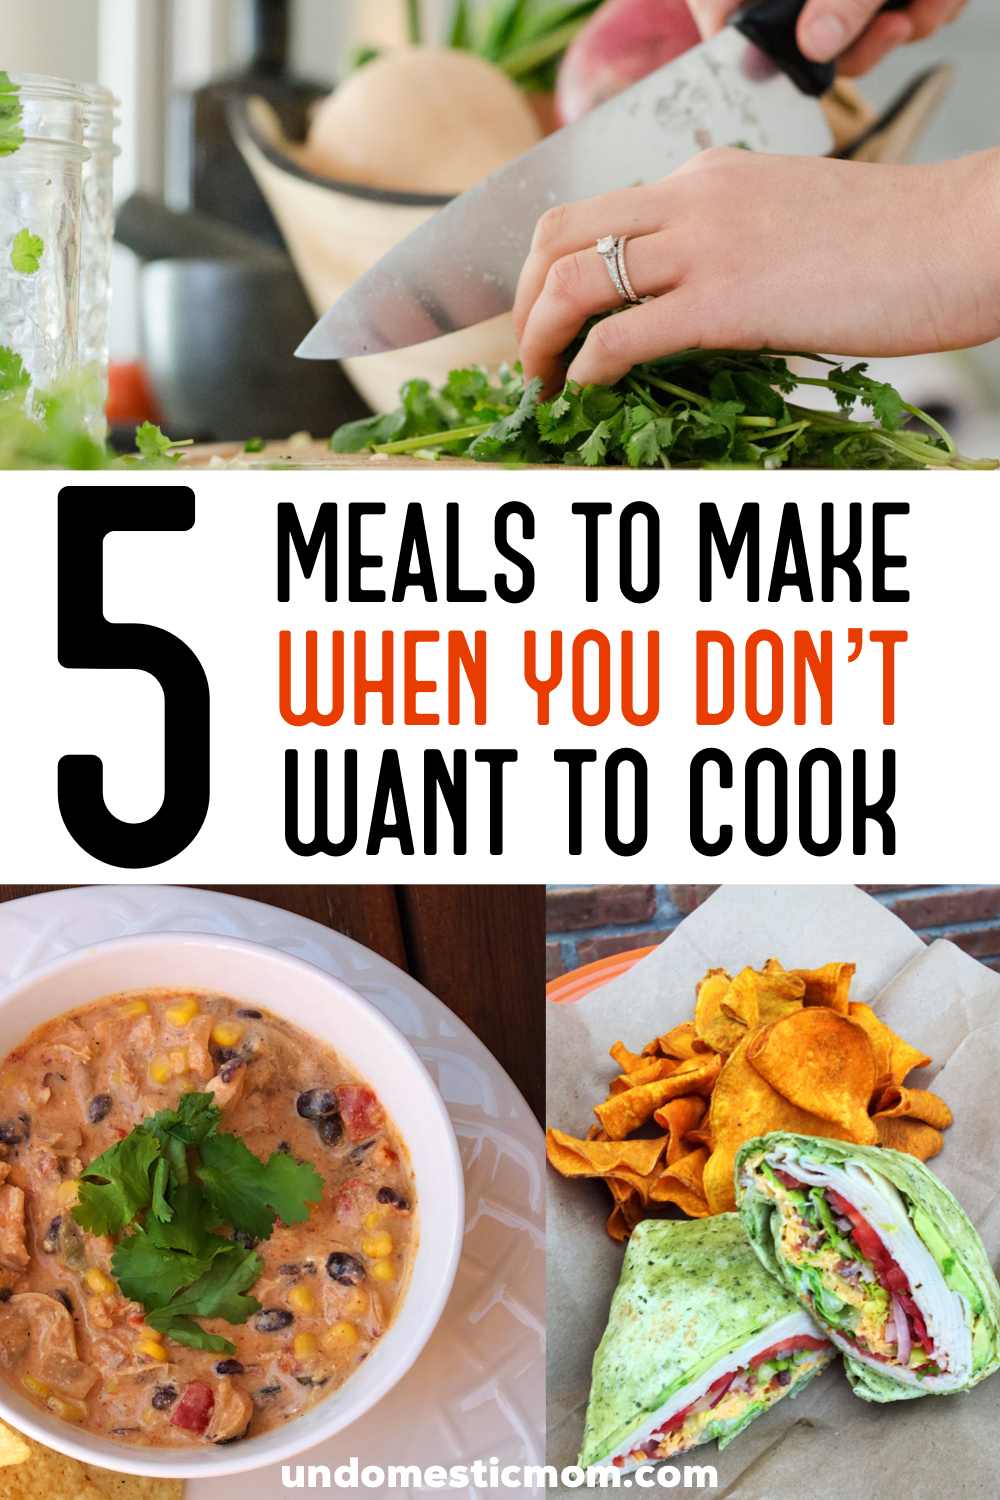 5 Meals to Make When You Don't Want to Cook images